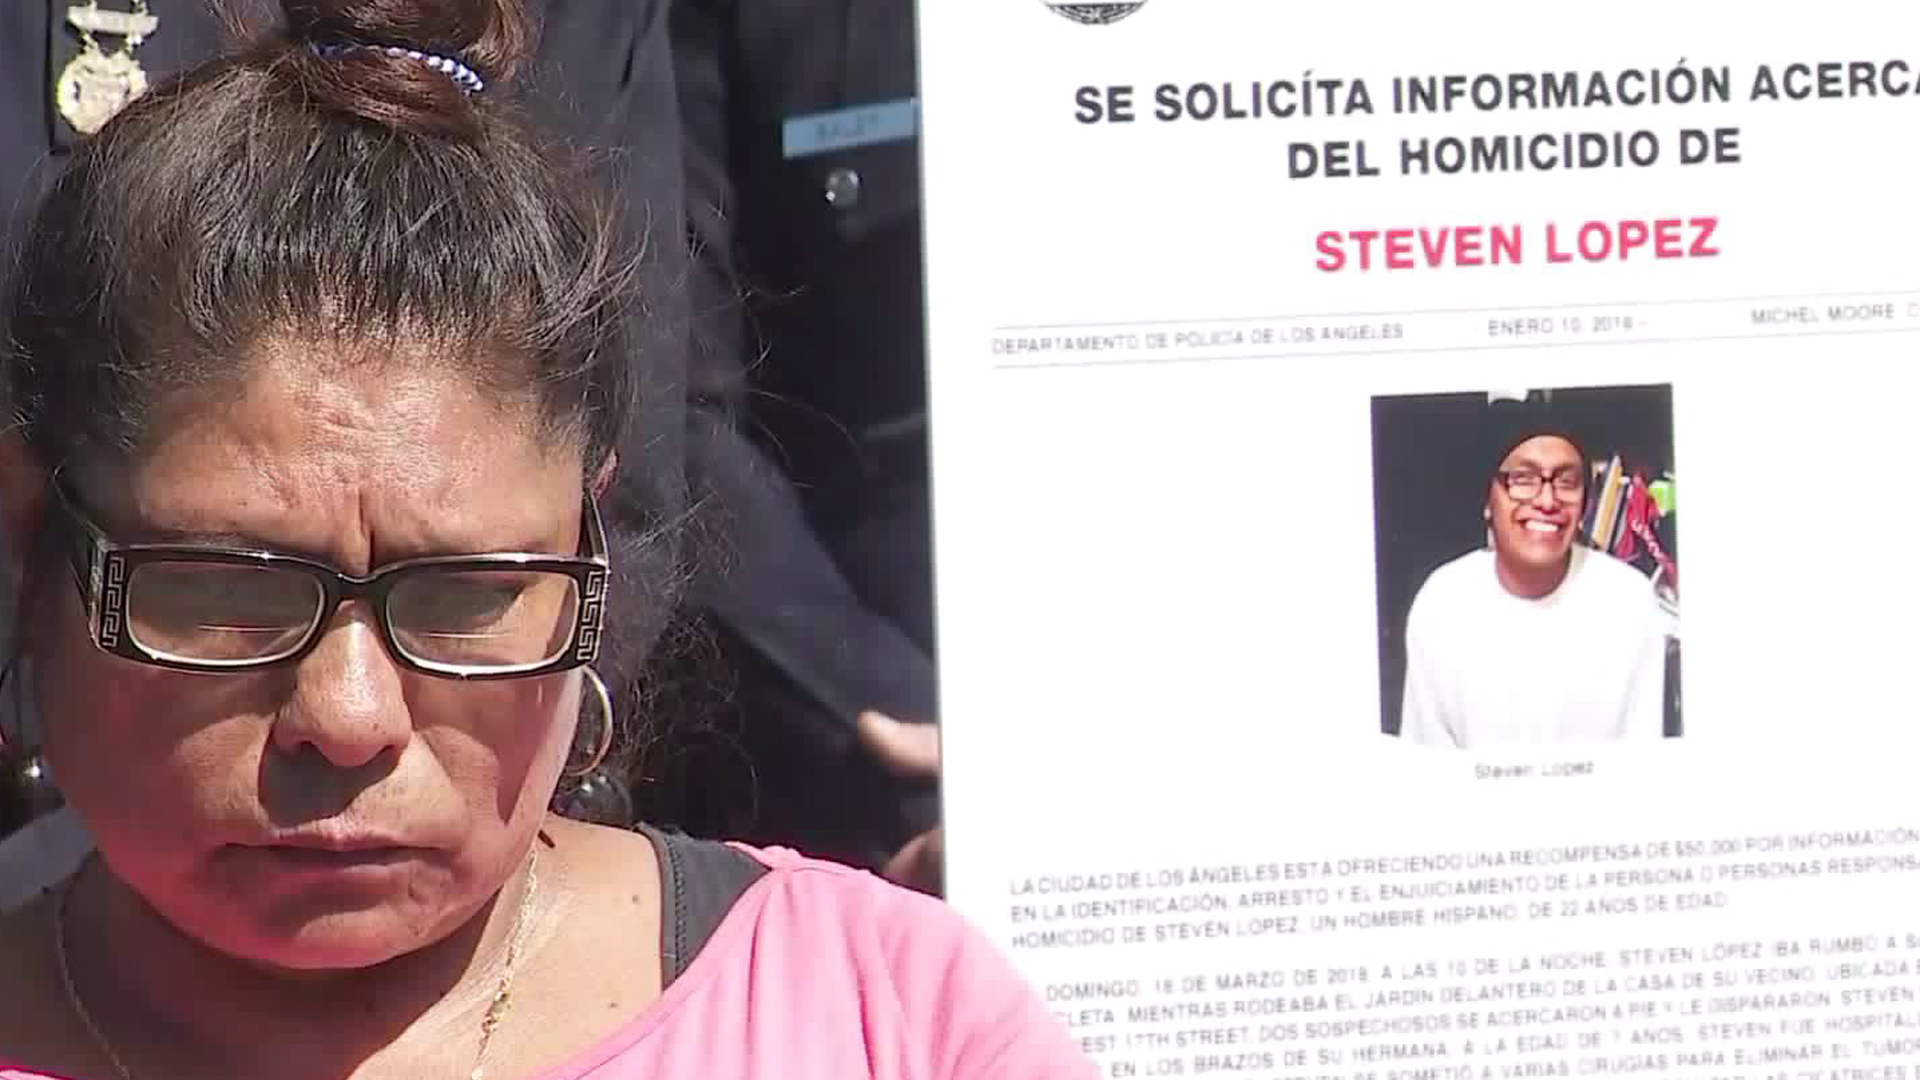 The mother of Steven Lopez, Flavia, addresses reporters on March 12, 2019, as she and police urge for someone to come forward and help solve her son's killing in Mid-City nearly a year earlier on March 18, 2018. (Credit: KTLA)